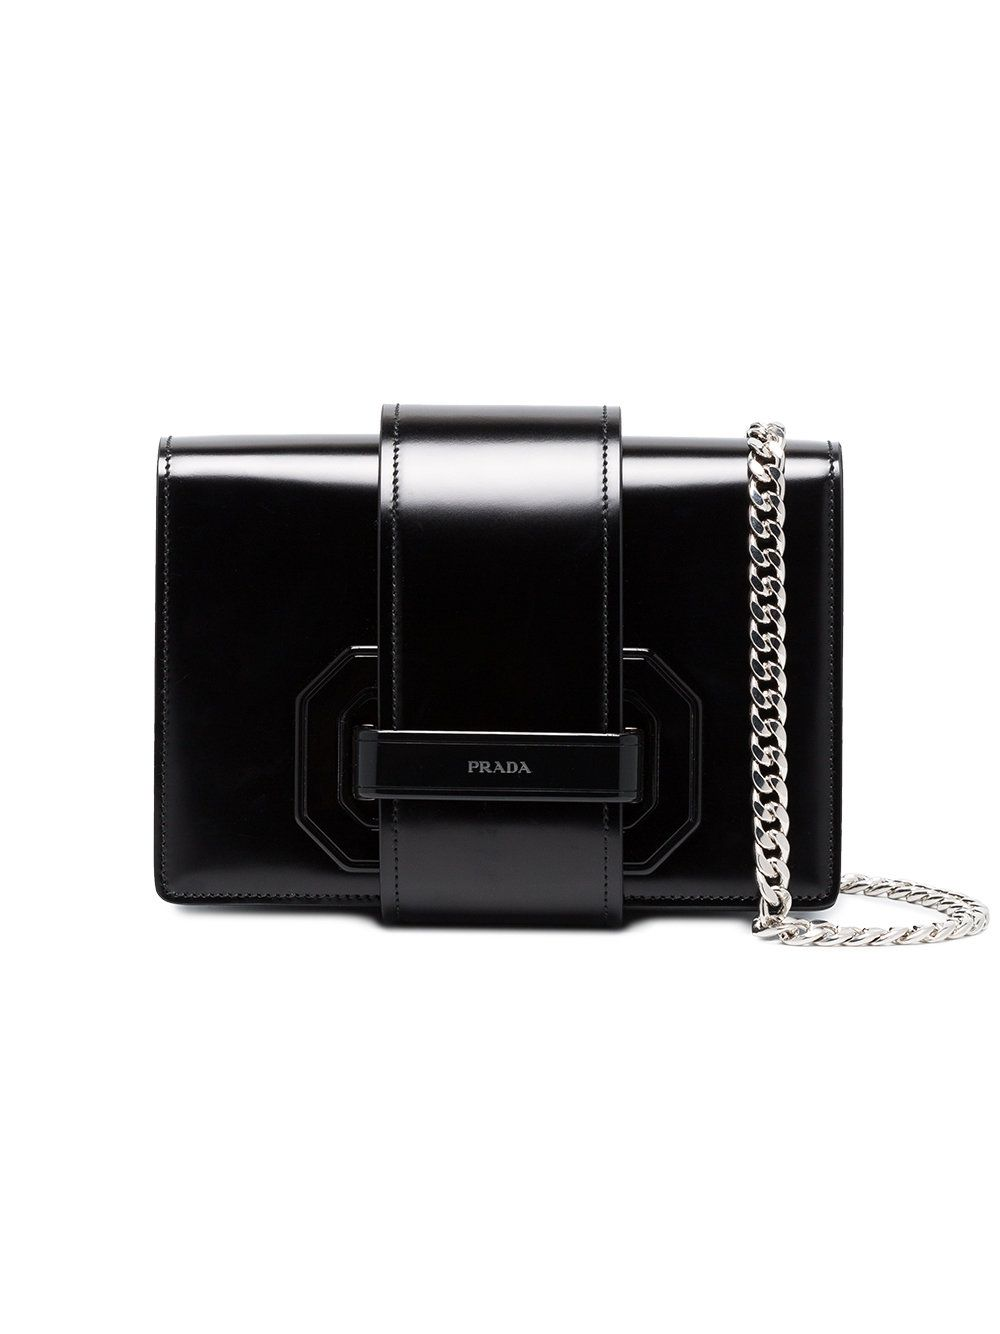 011ce0a4b0f7e0 Prada Black plex ribbon leather shoulder bag | Prada | Leather ...